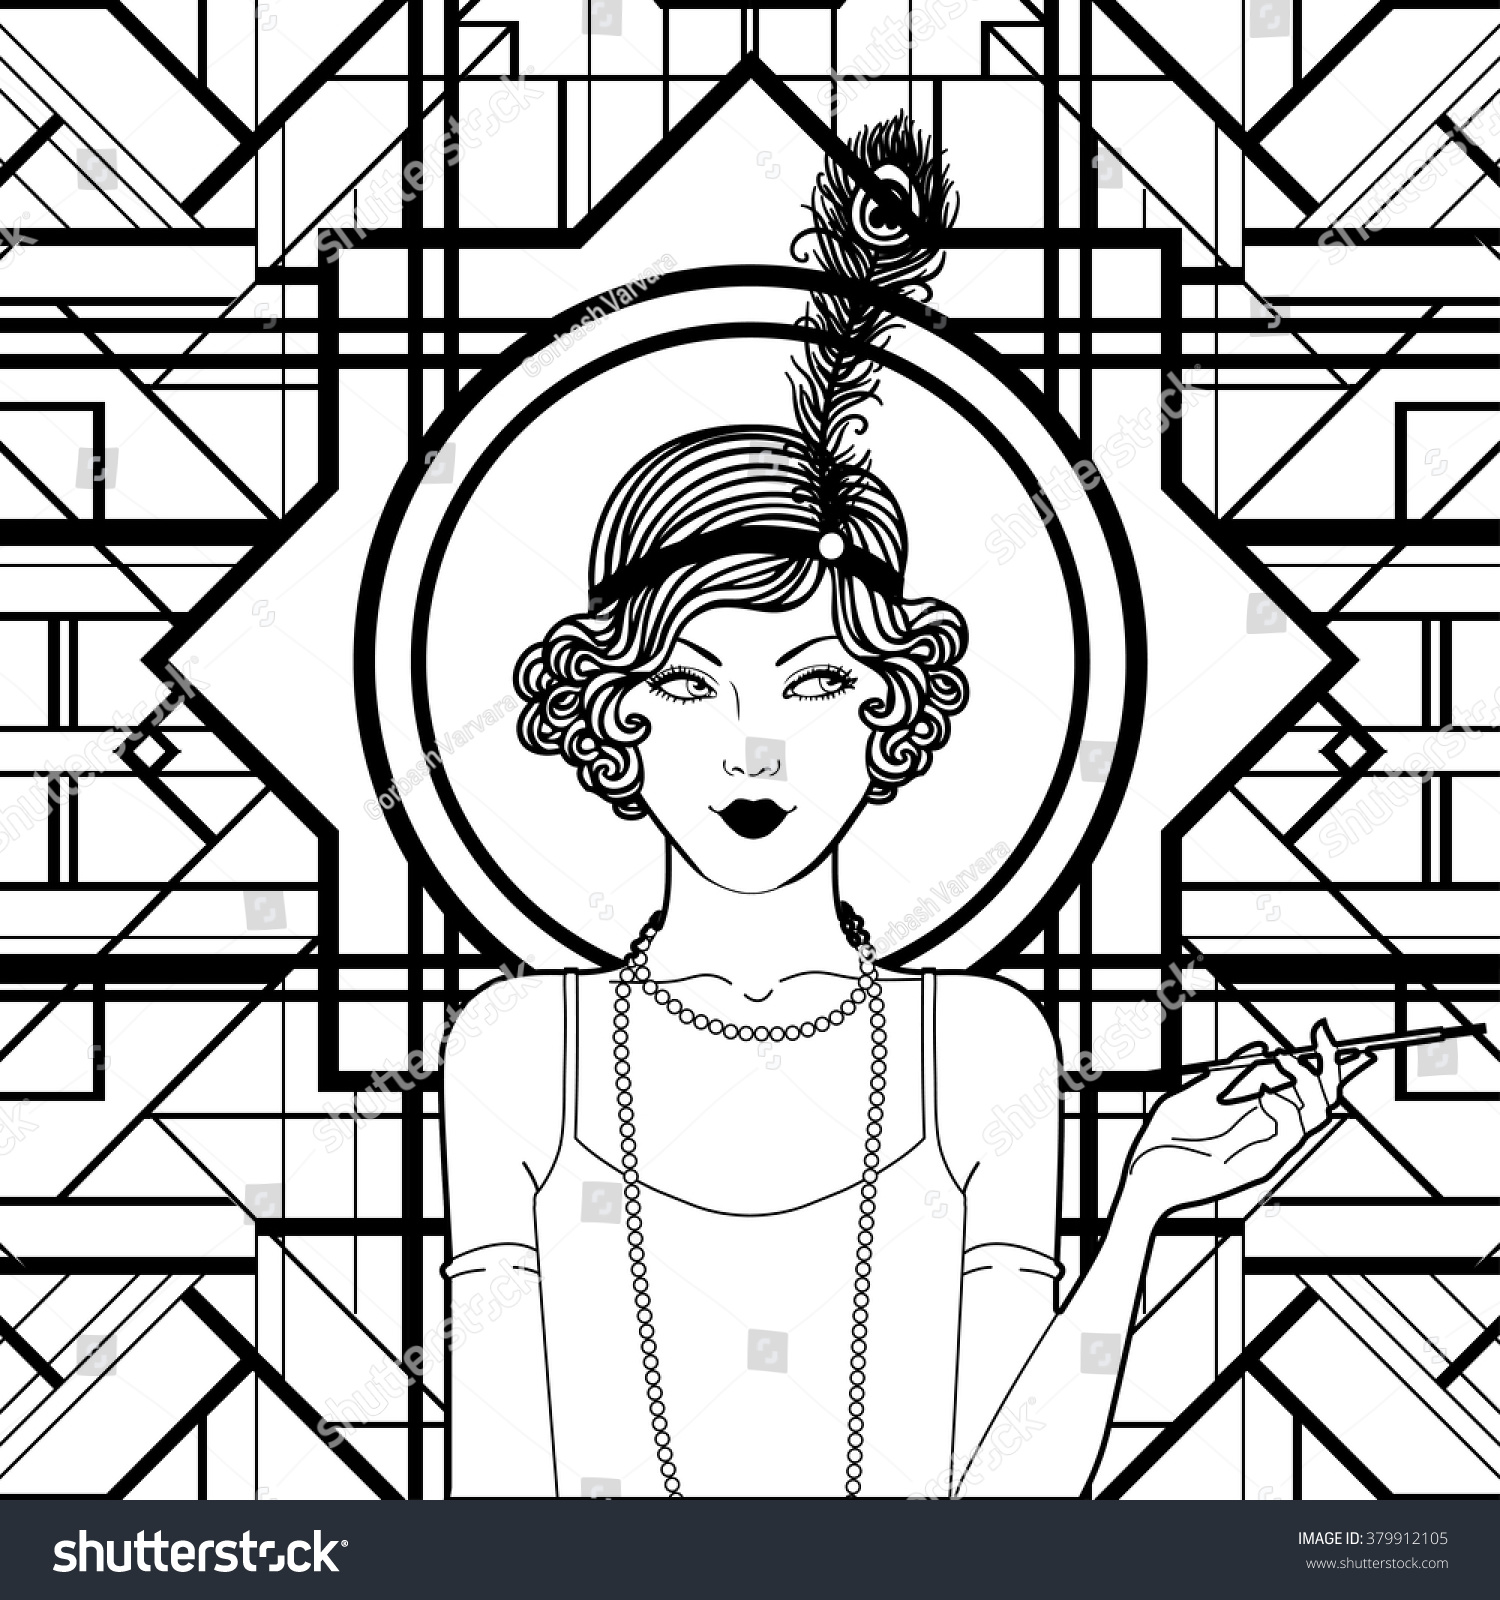 Coloring book outlines - Retro Coloring Book For Kids And Adults Retro Women Of Twenties Vector Illustration